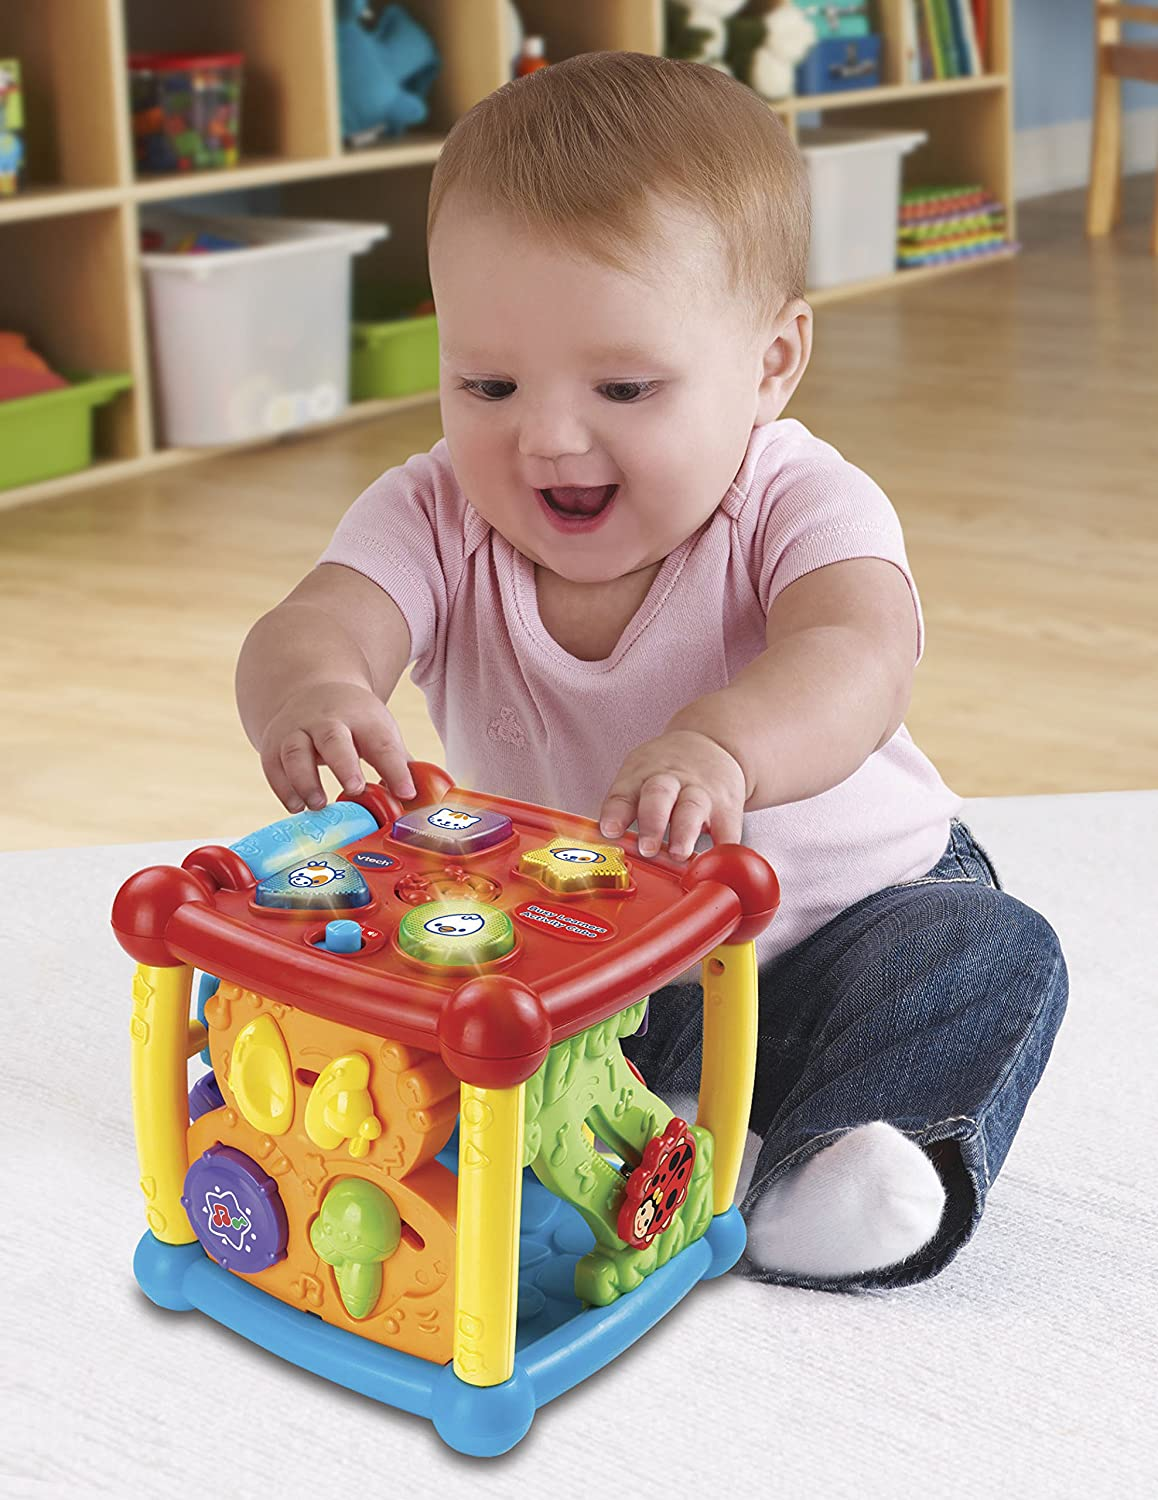 Baby Activity Toys : Vtech baby activity center cube kids learning toys animal